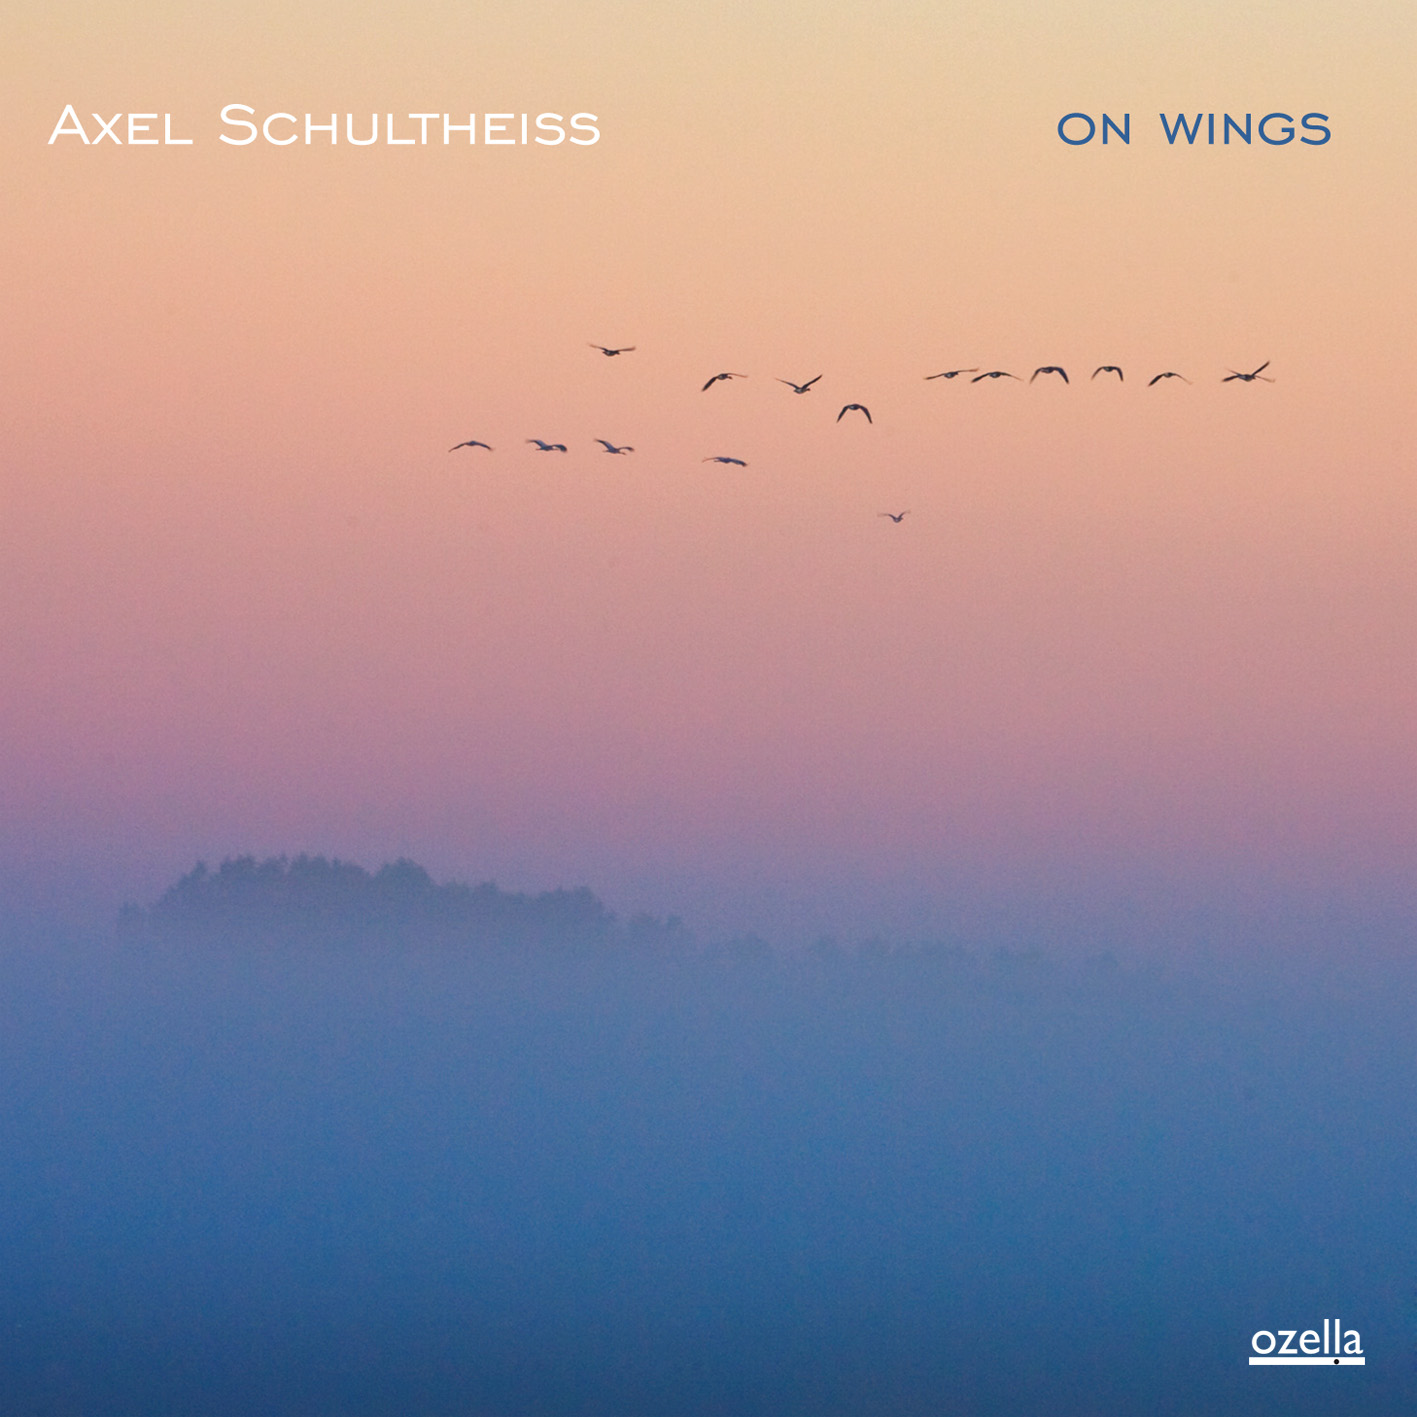 Axel schultheiss - on wings